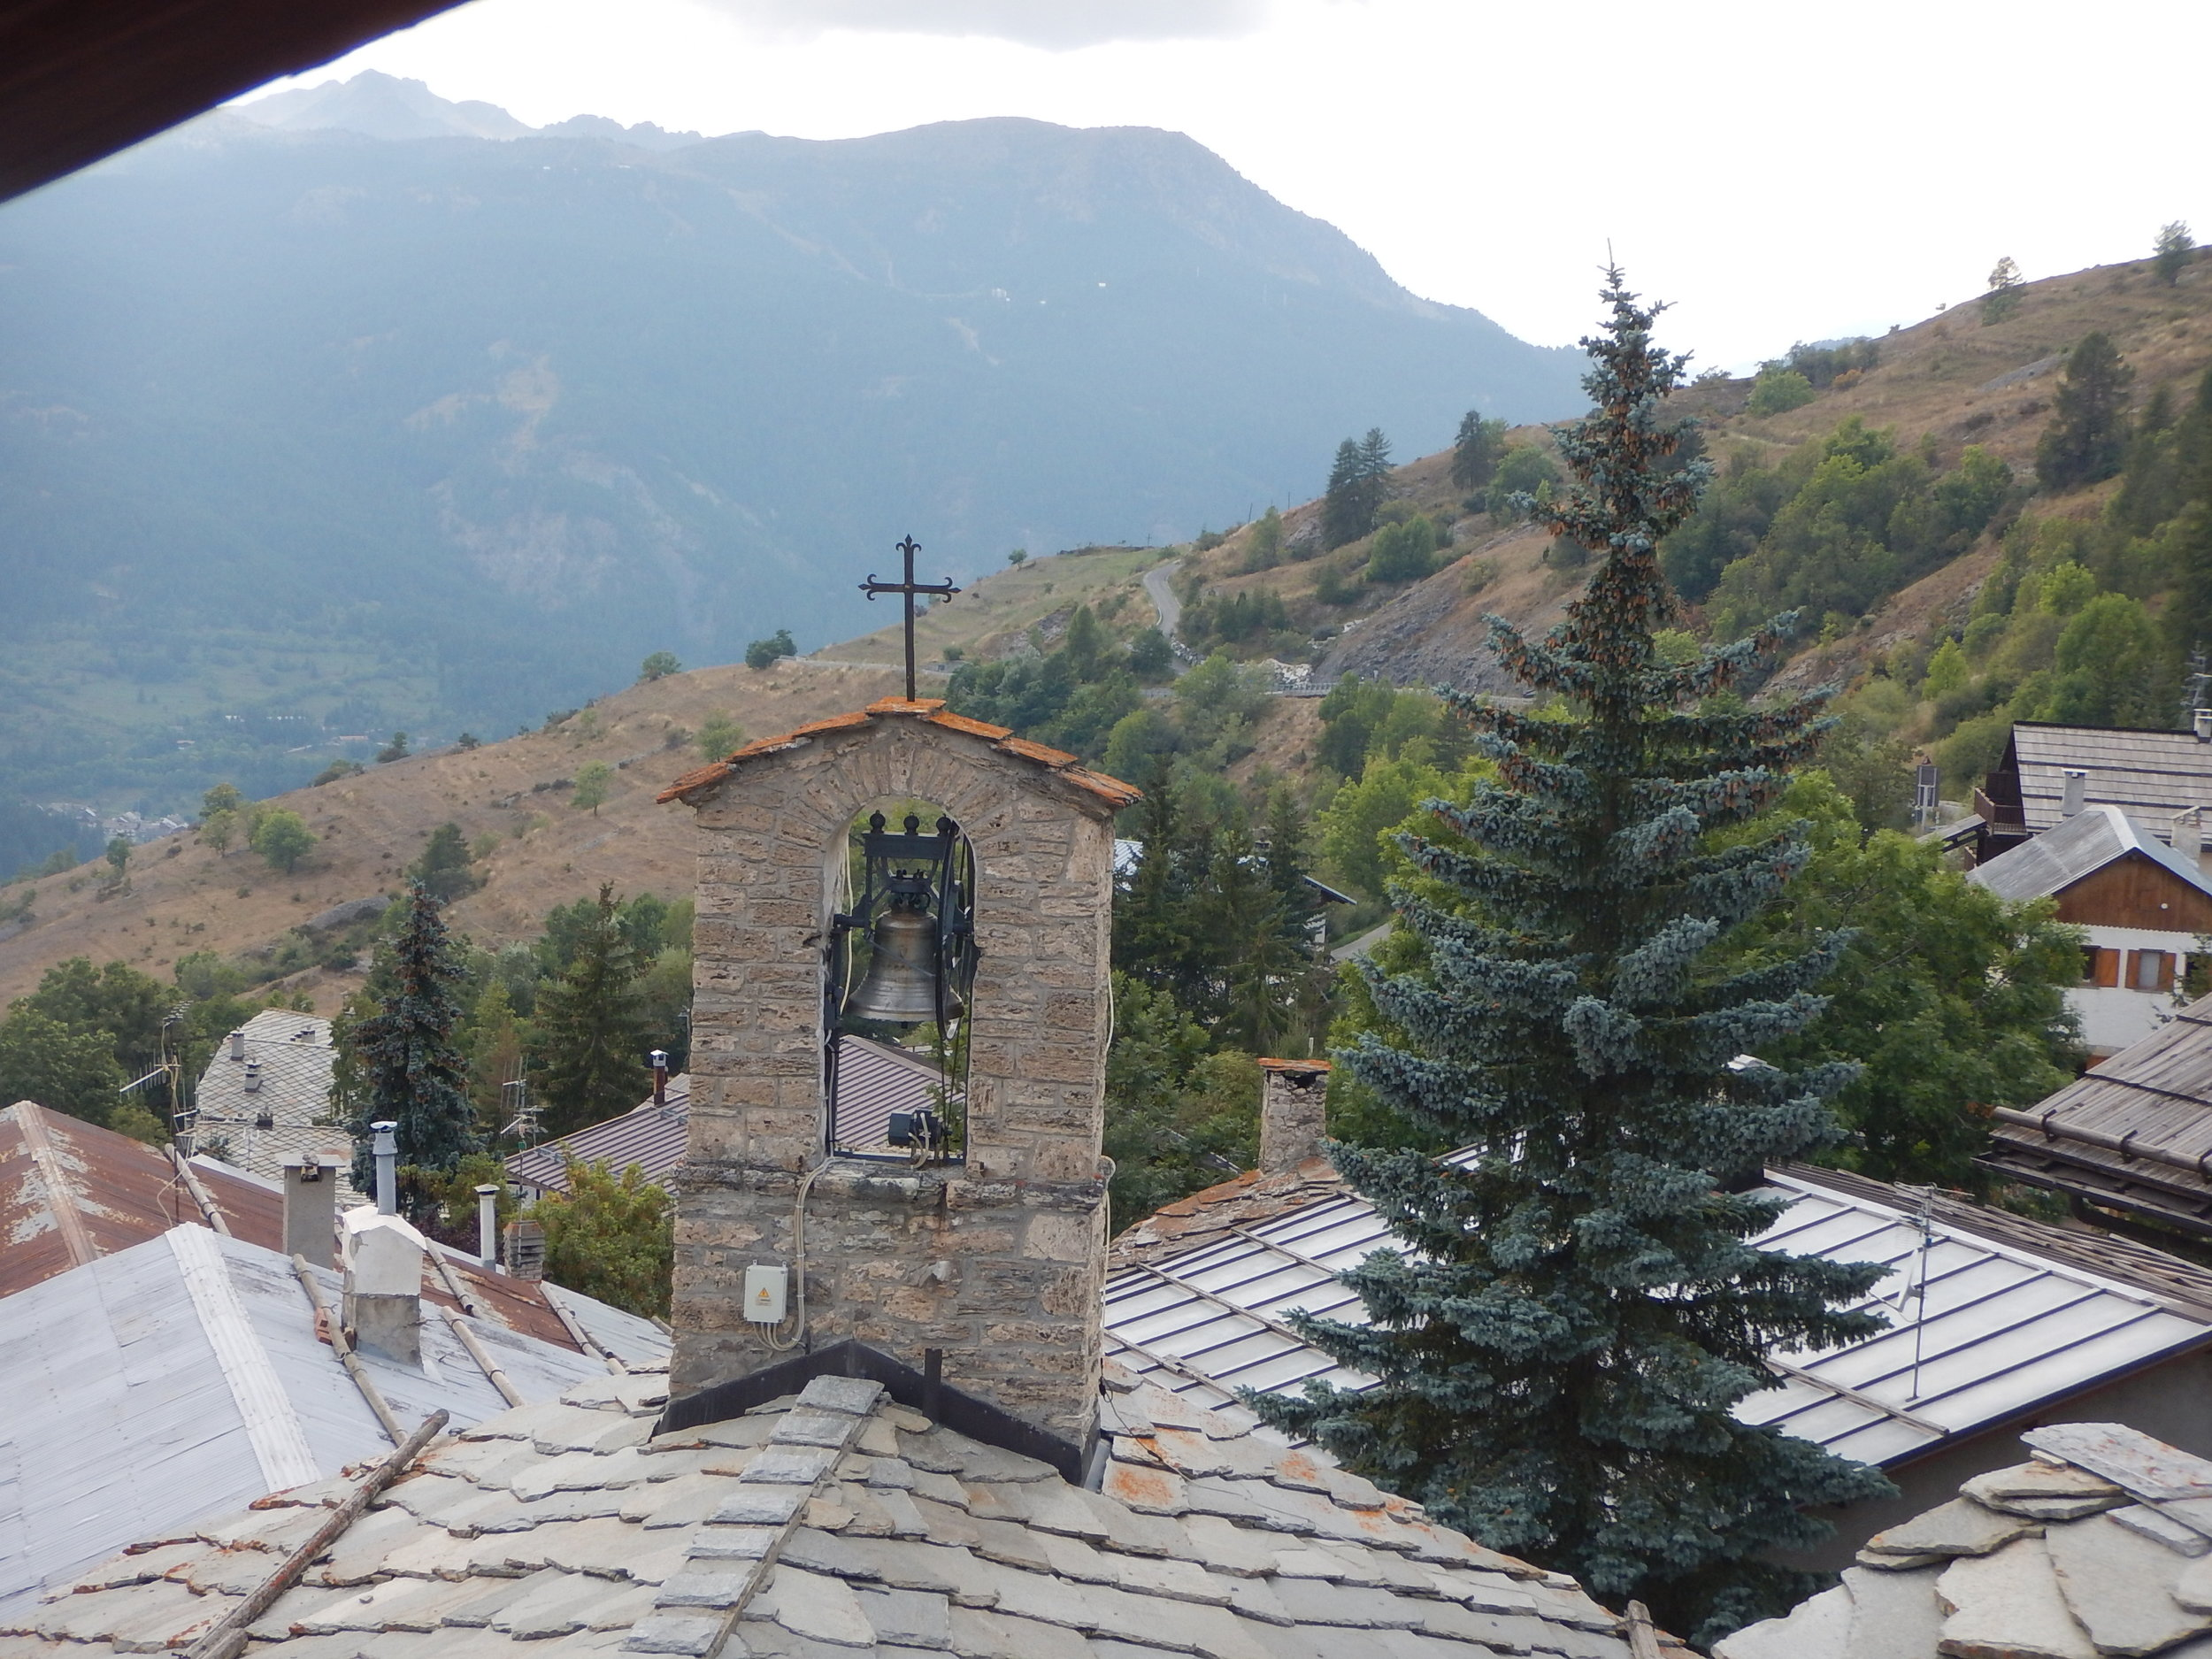 Bells ring on the hour and every 30 mins. Not as tuneful as the Camogli bells though.